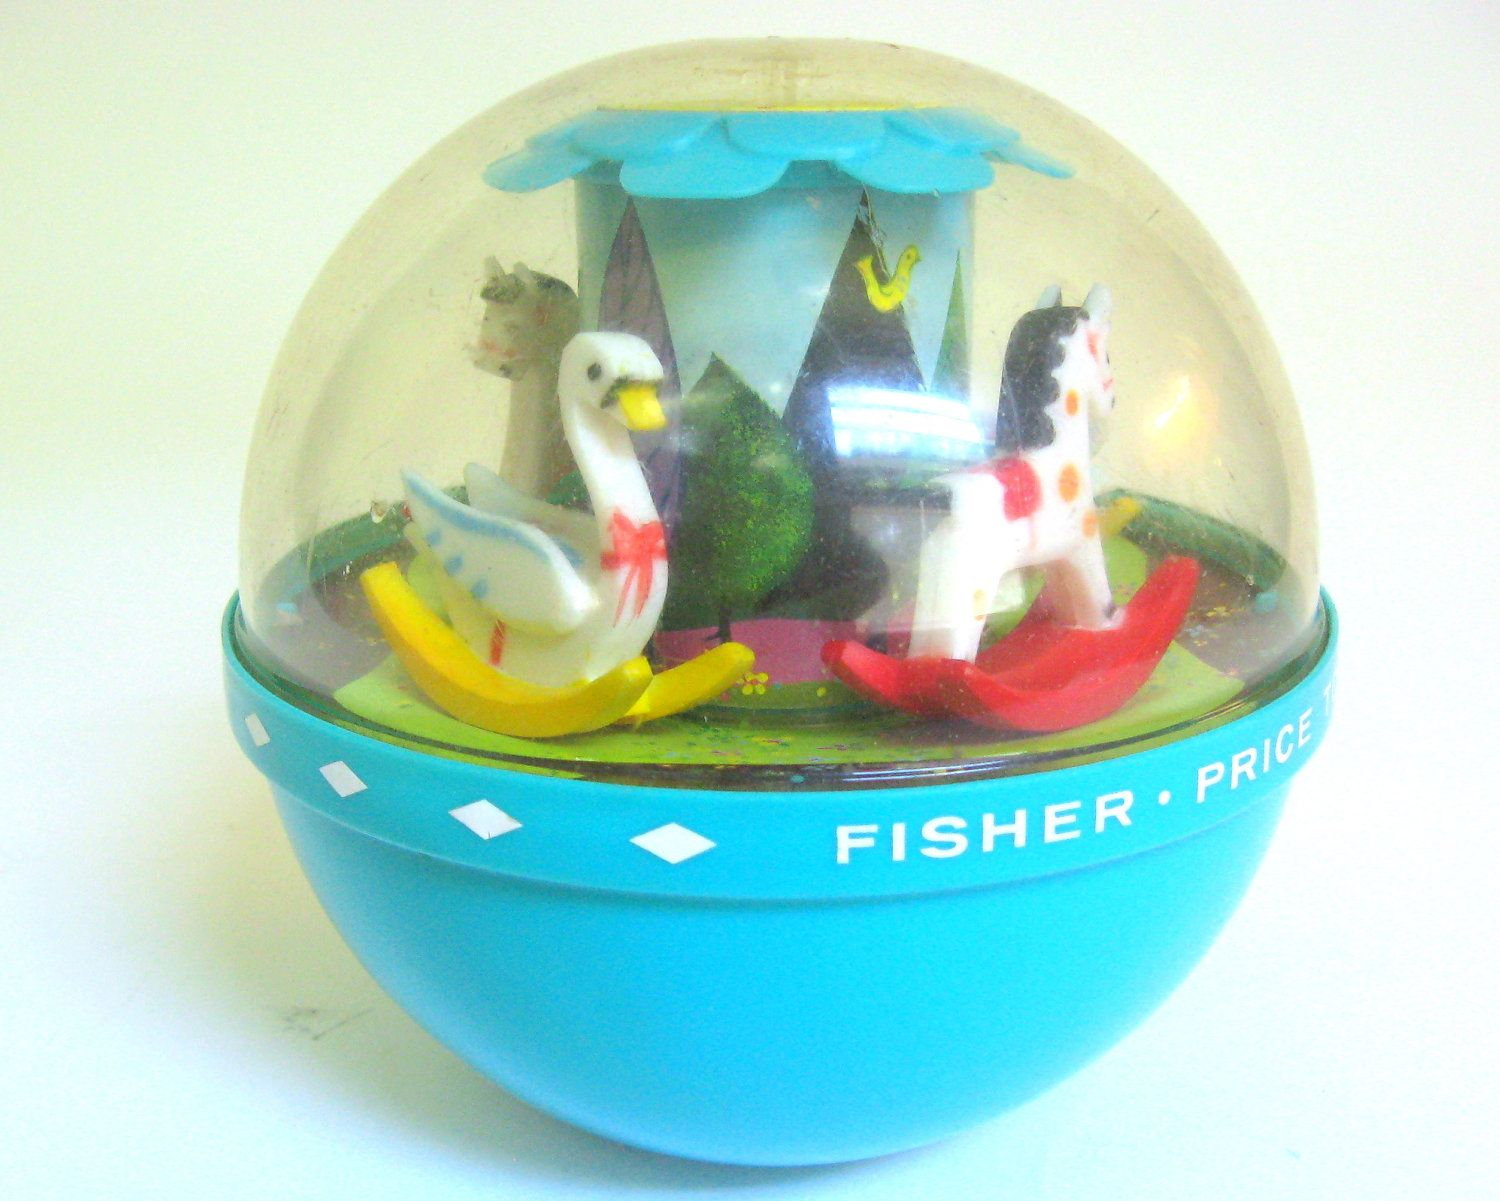 Images of vintage toys  RetroVintageToys  Vintage Fisher Price Toy   Roly Poly